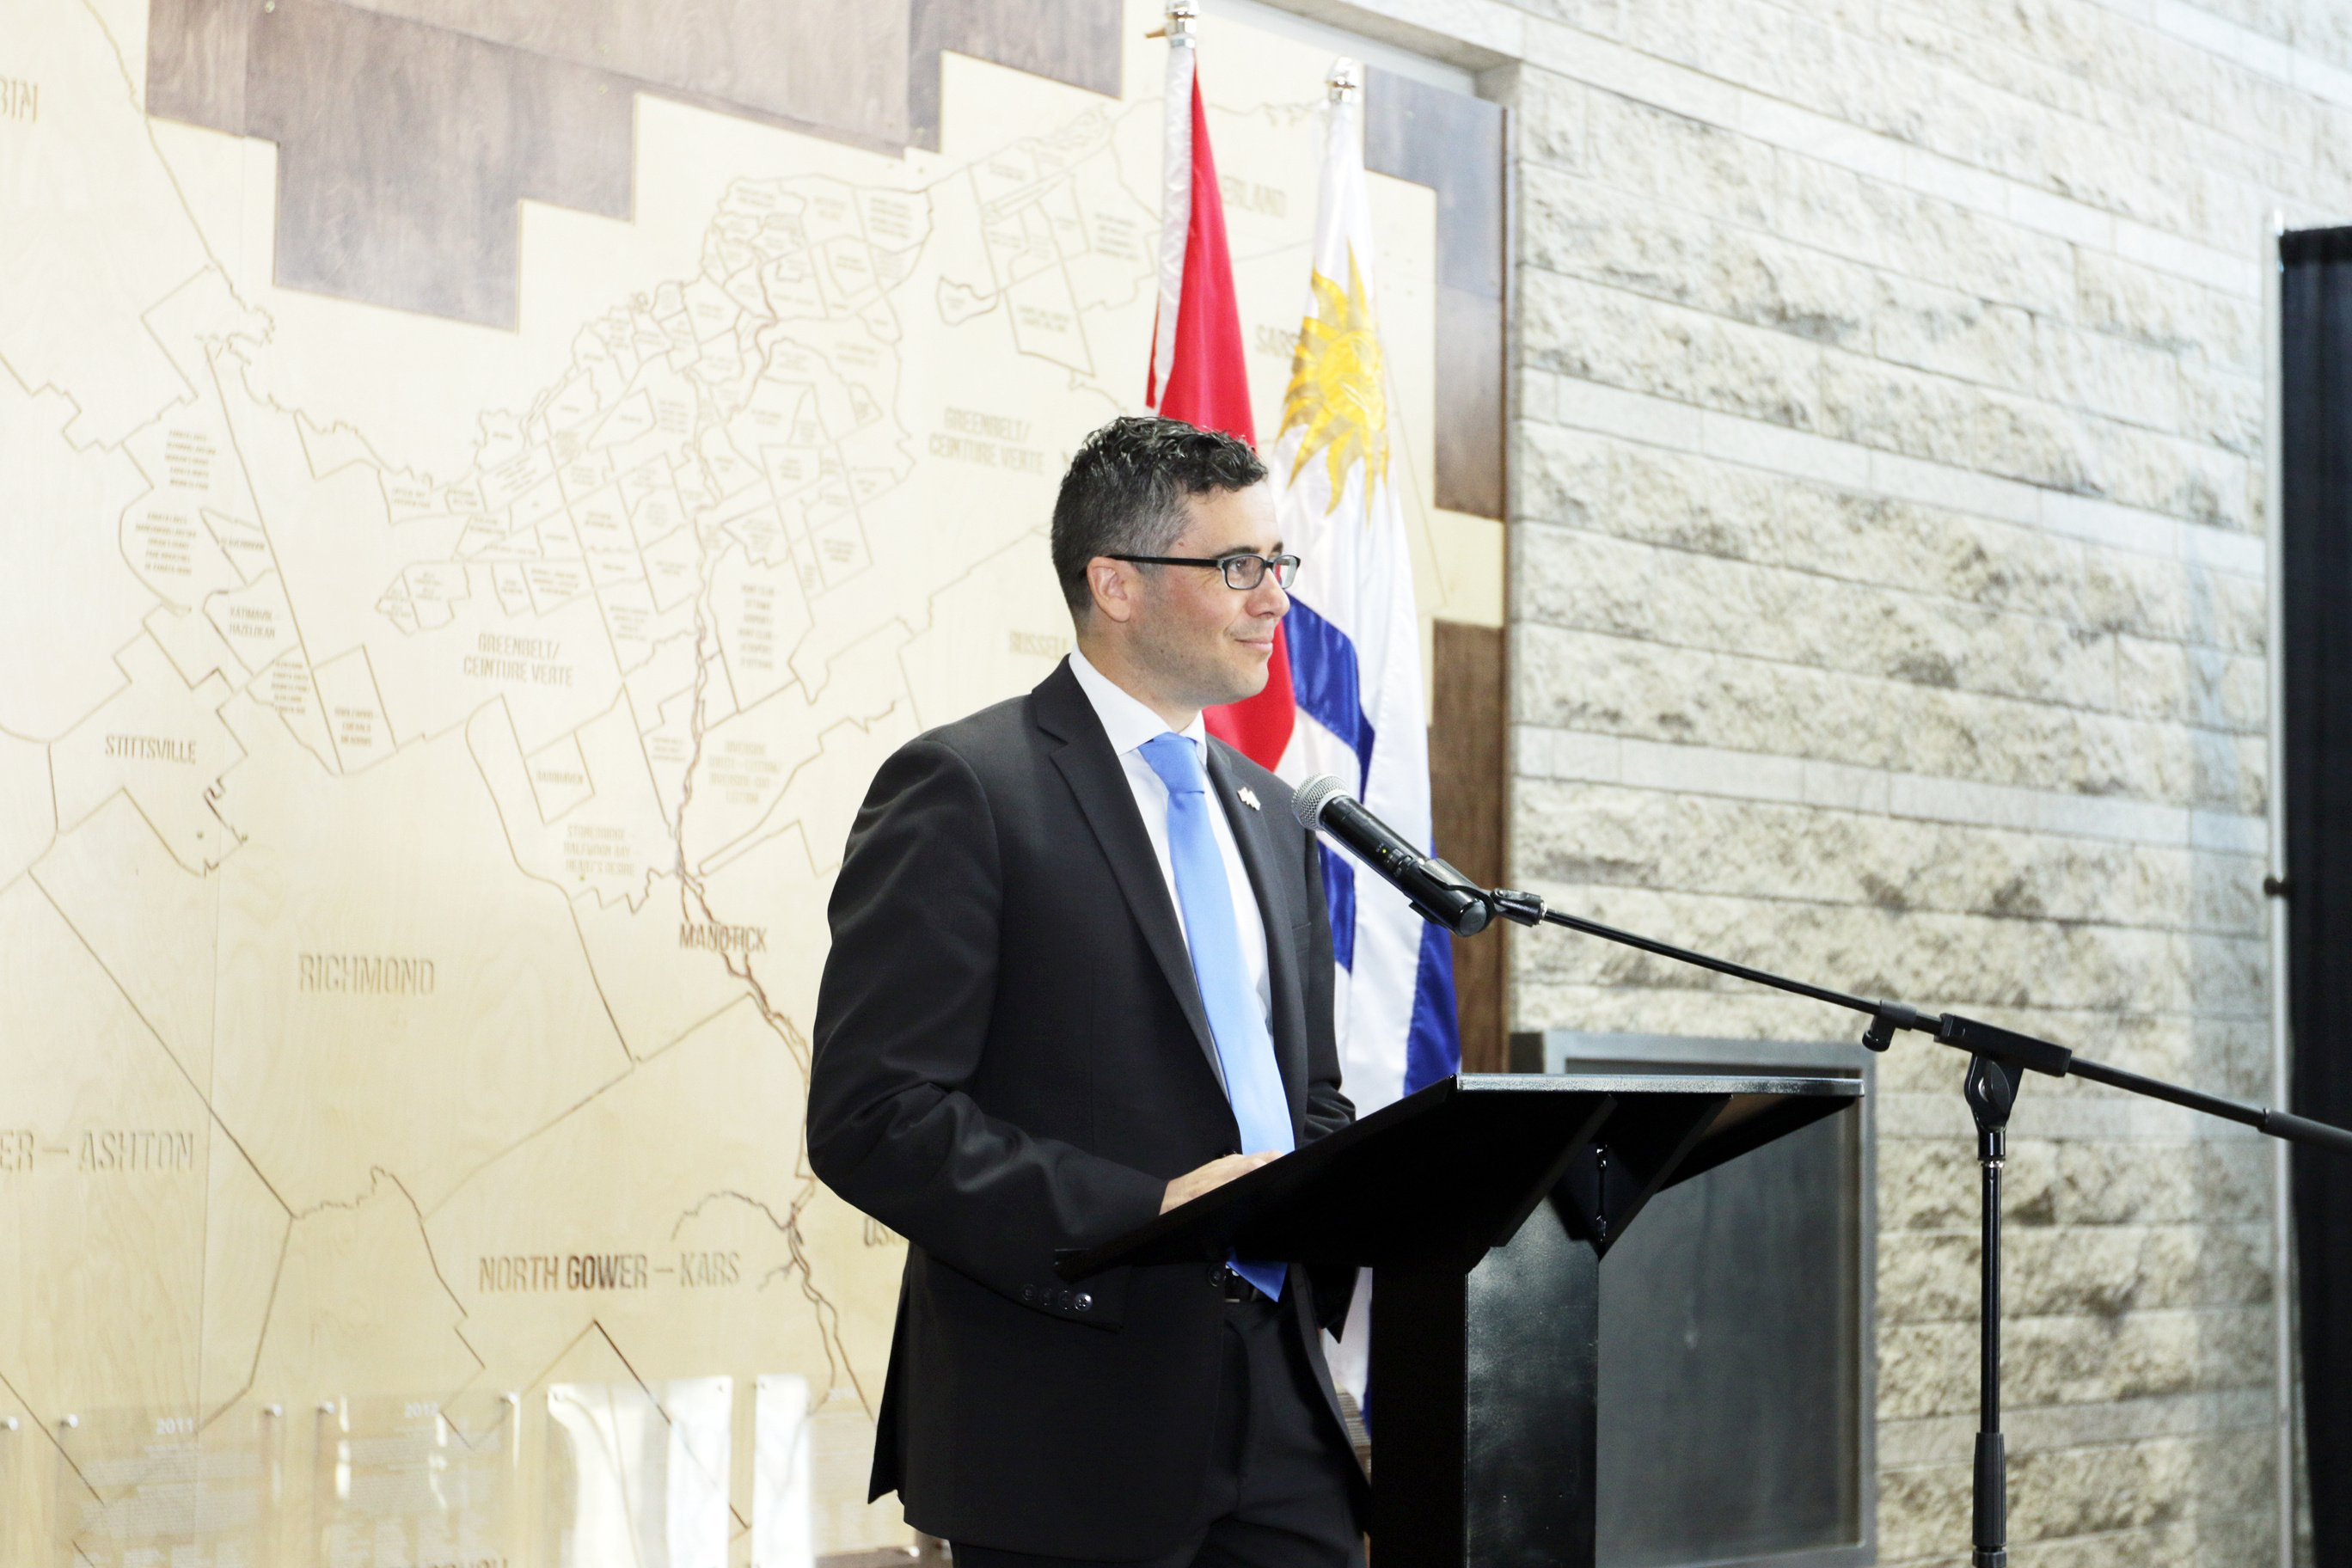 Opening remarks by Ambassador Vidal at the National Day of Uruguay, celebrated on June 19th.